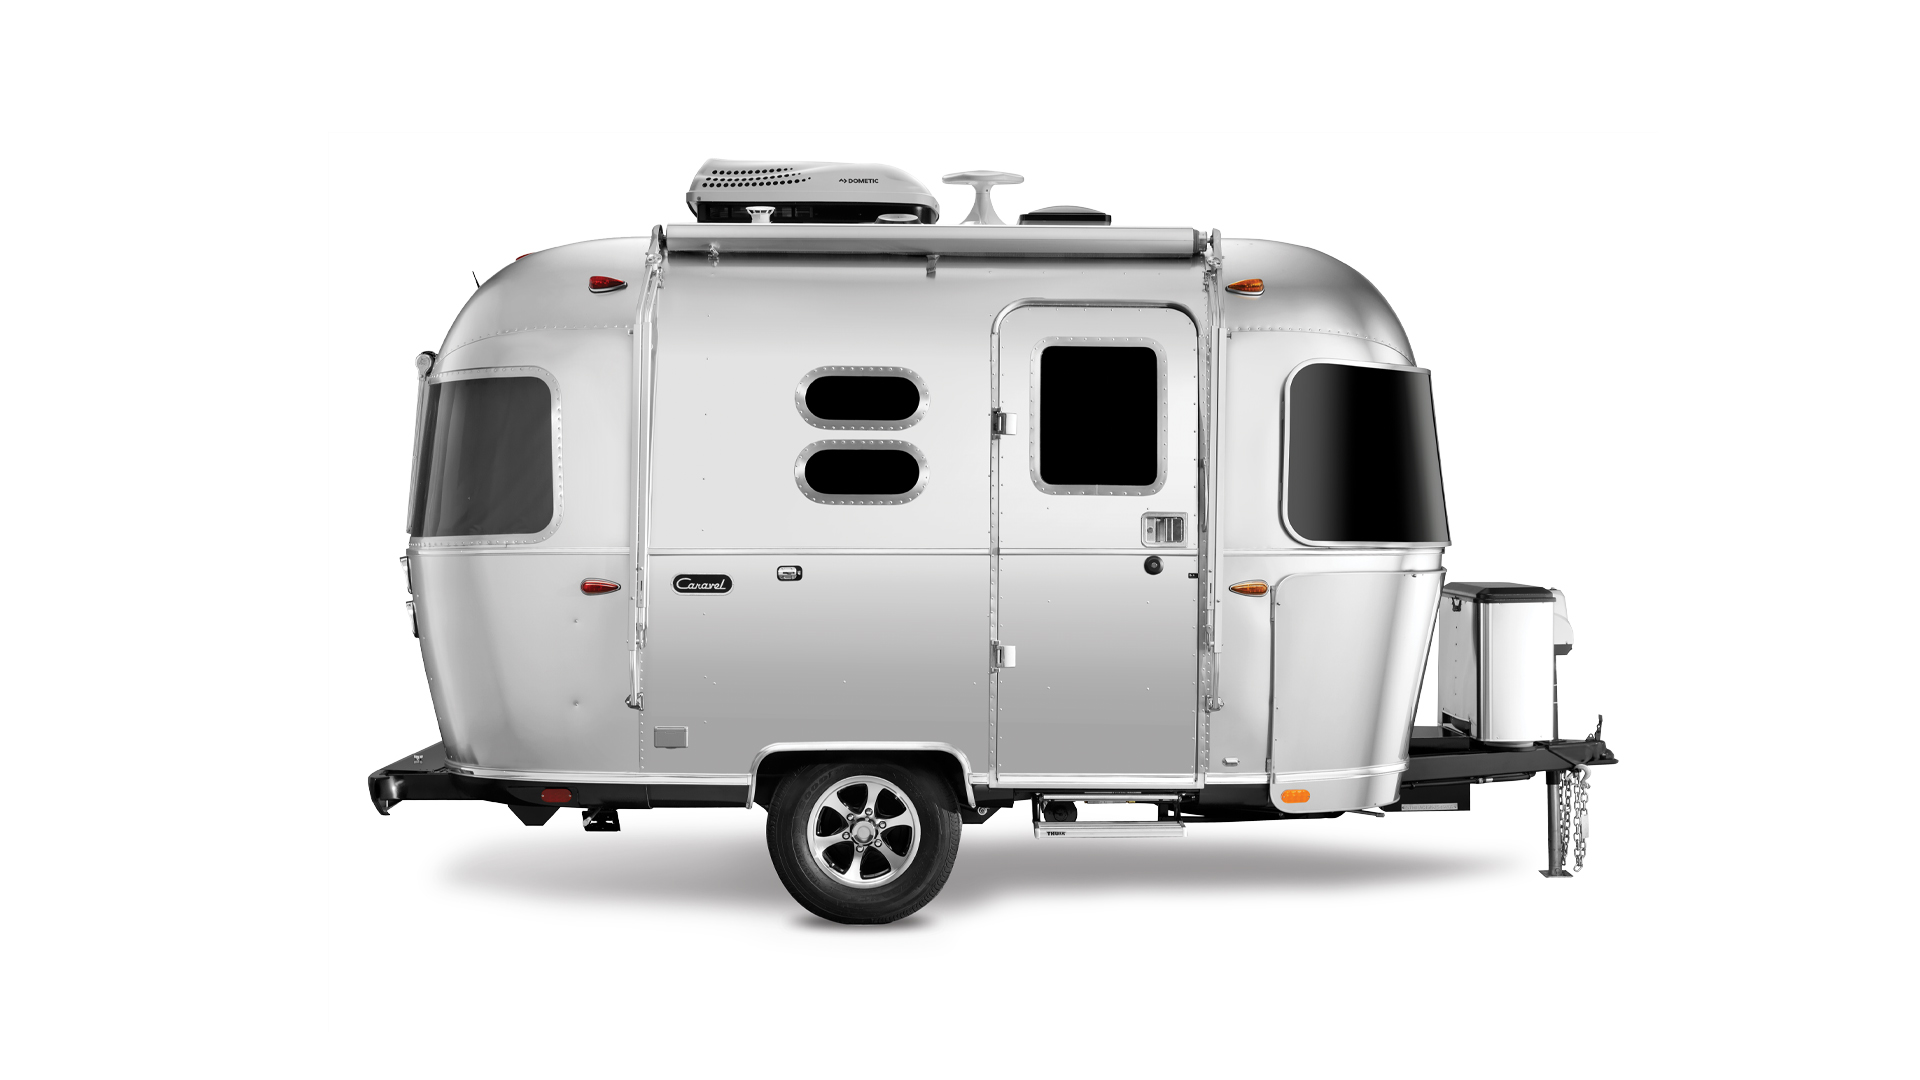 Airstream Caravel Camper Curb Side View